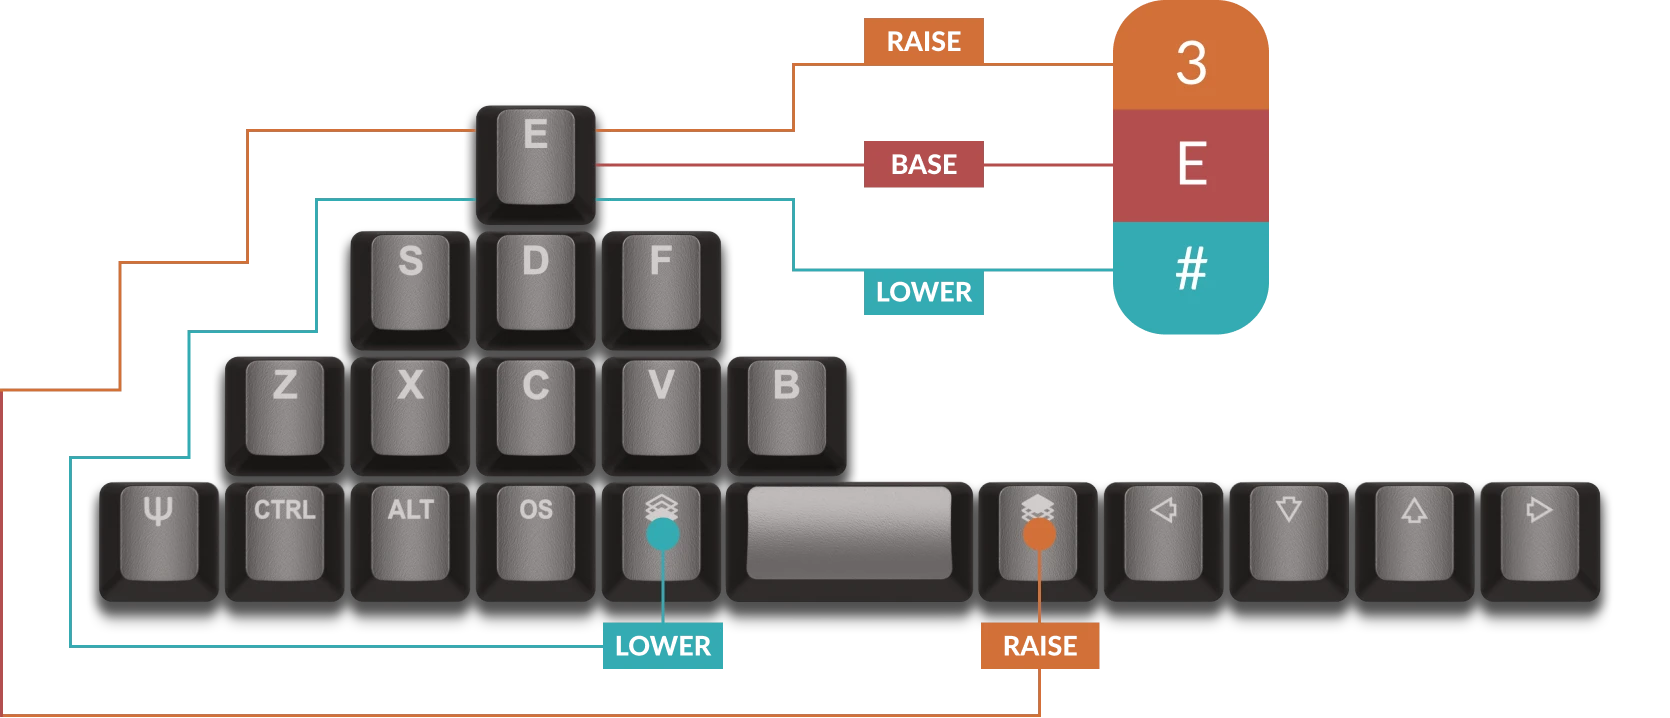 Planck Keyboards with Raise and Lower keys